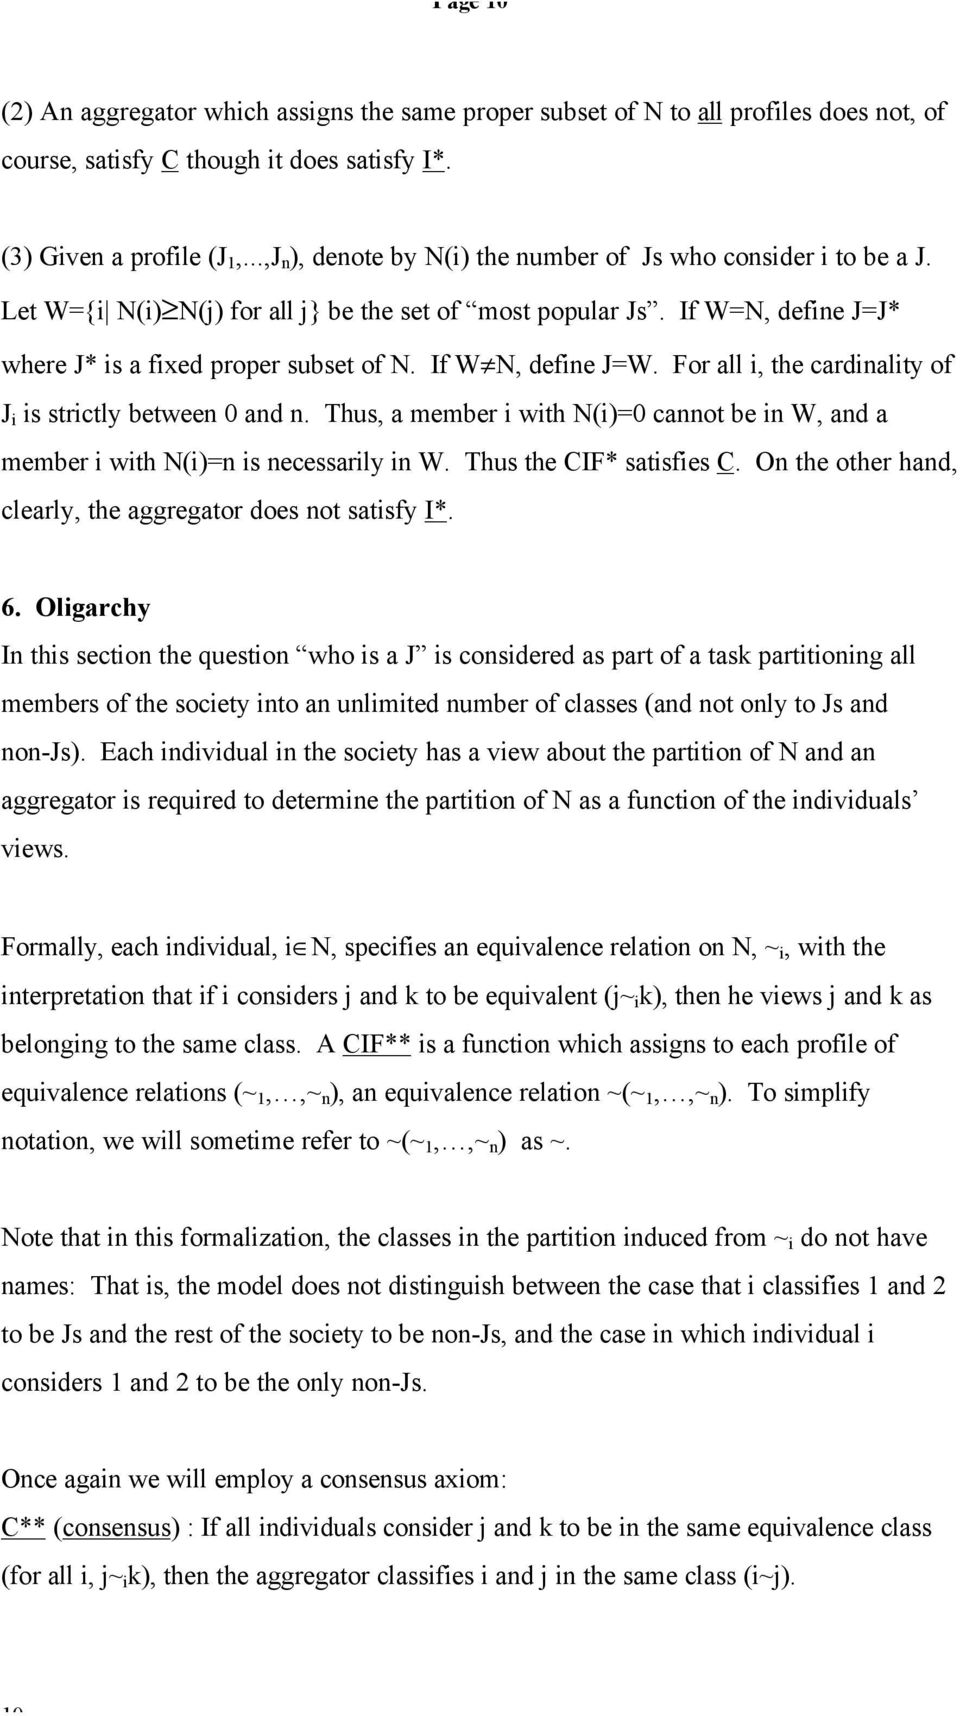 If W N, define J=W. For all i, the cardinality of J i is strictly between 0 and n. Thus, a member i with N(i)=0 cannot be in W, and a member i with N(i)=n is necessarily in W.